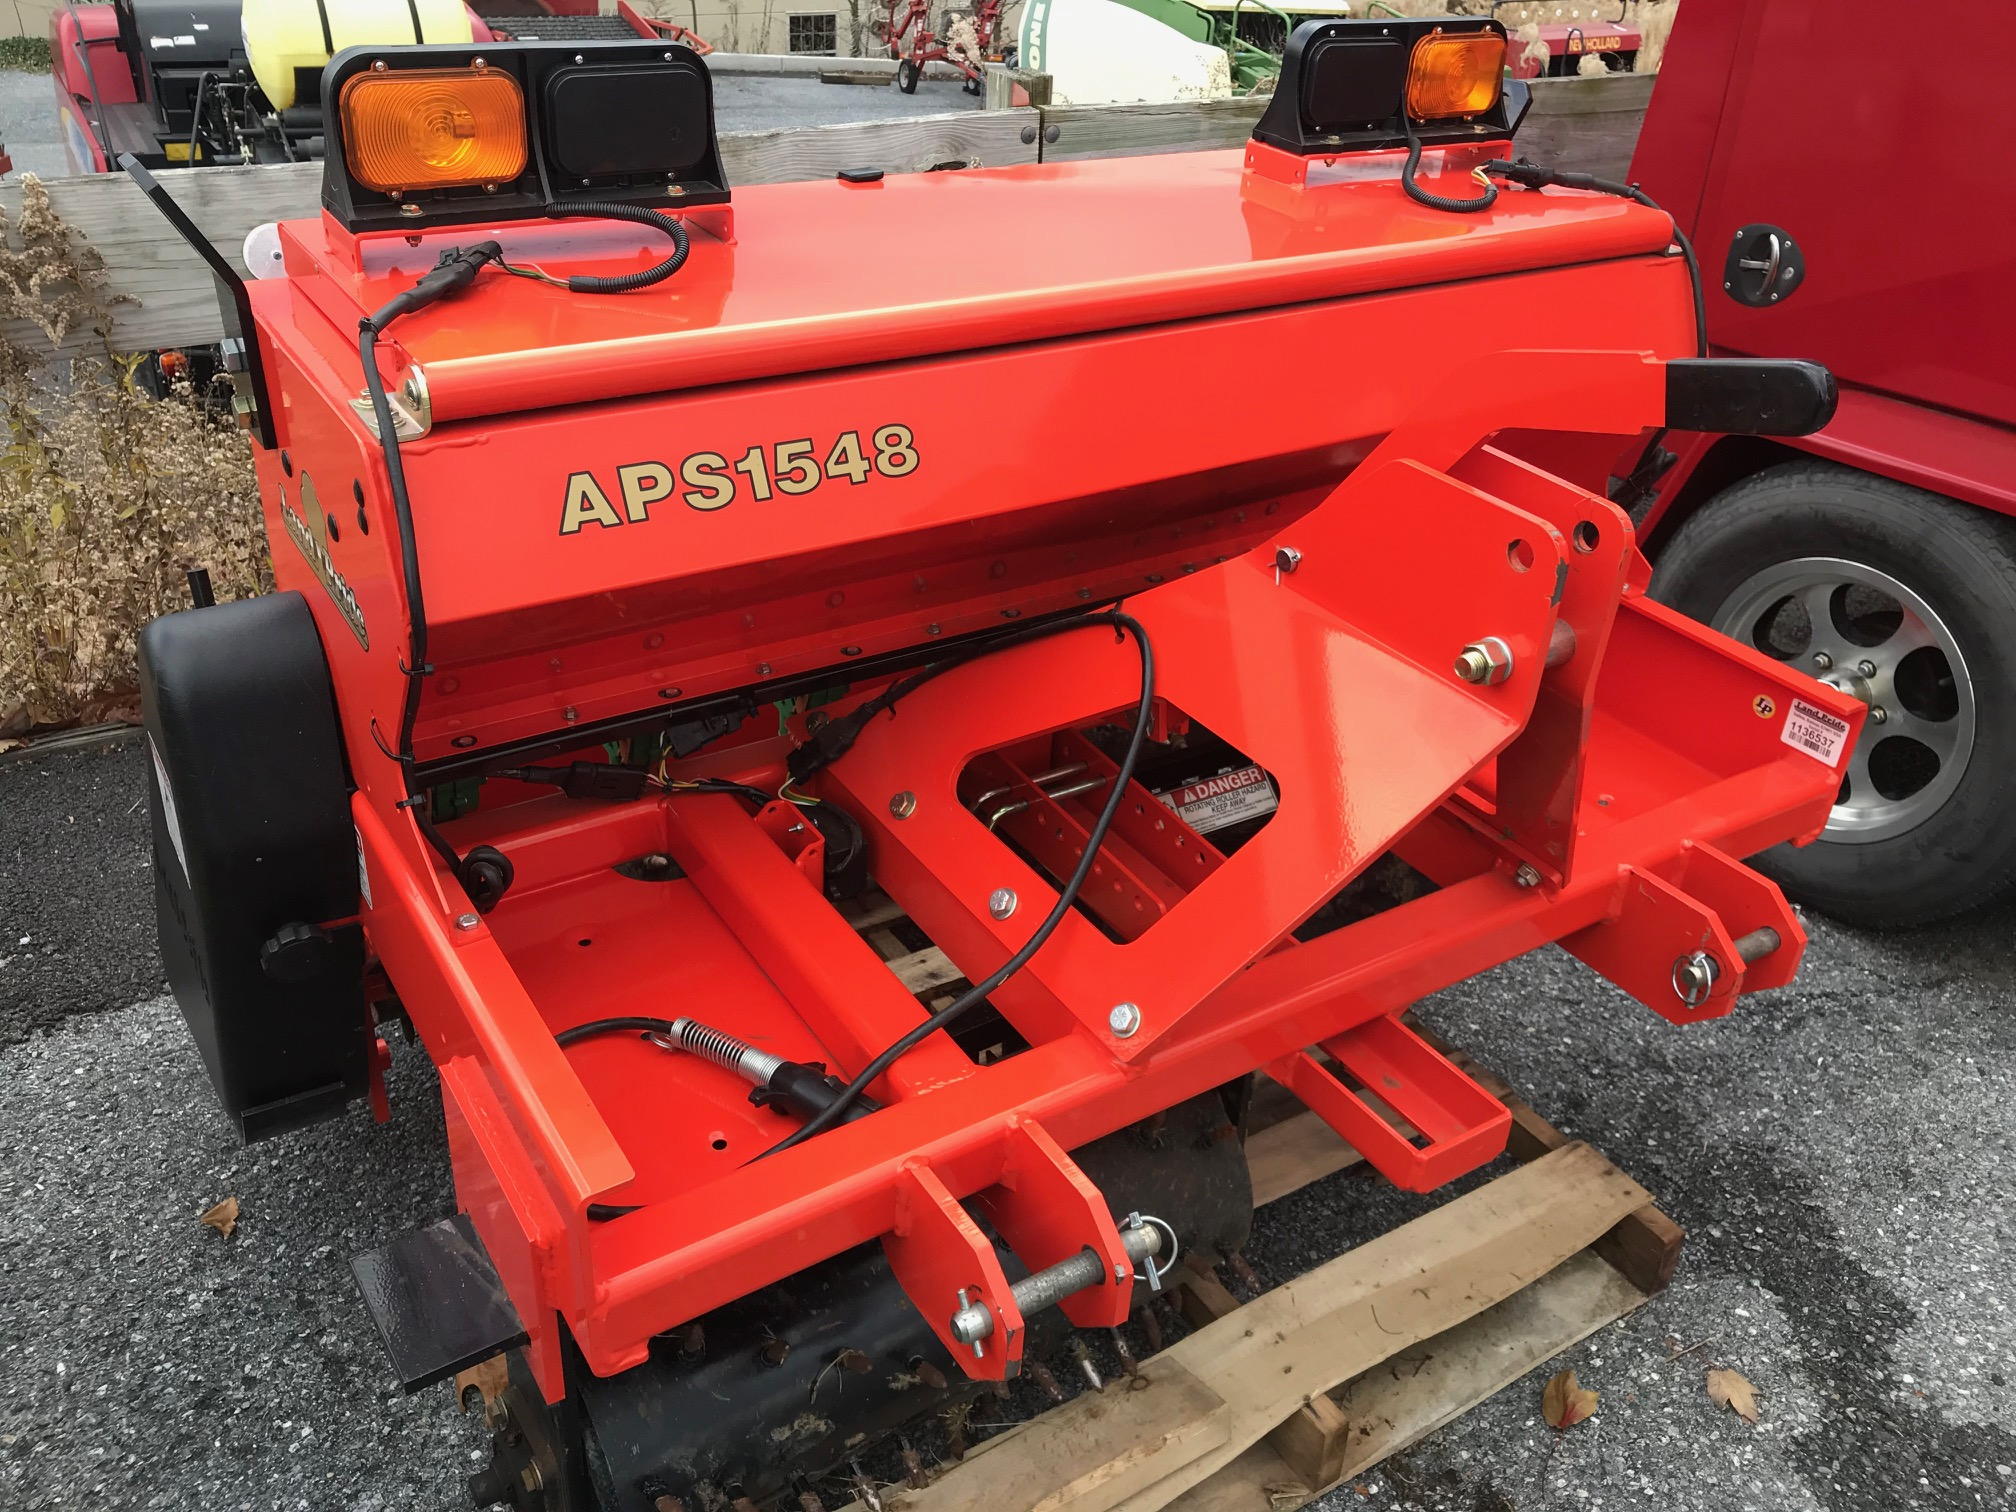 Used LAND PRIDE APS1548 $4,095.00